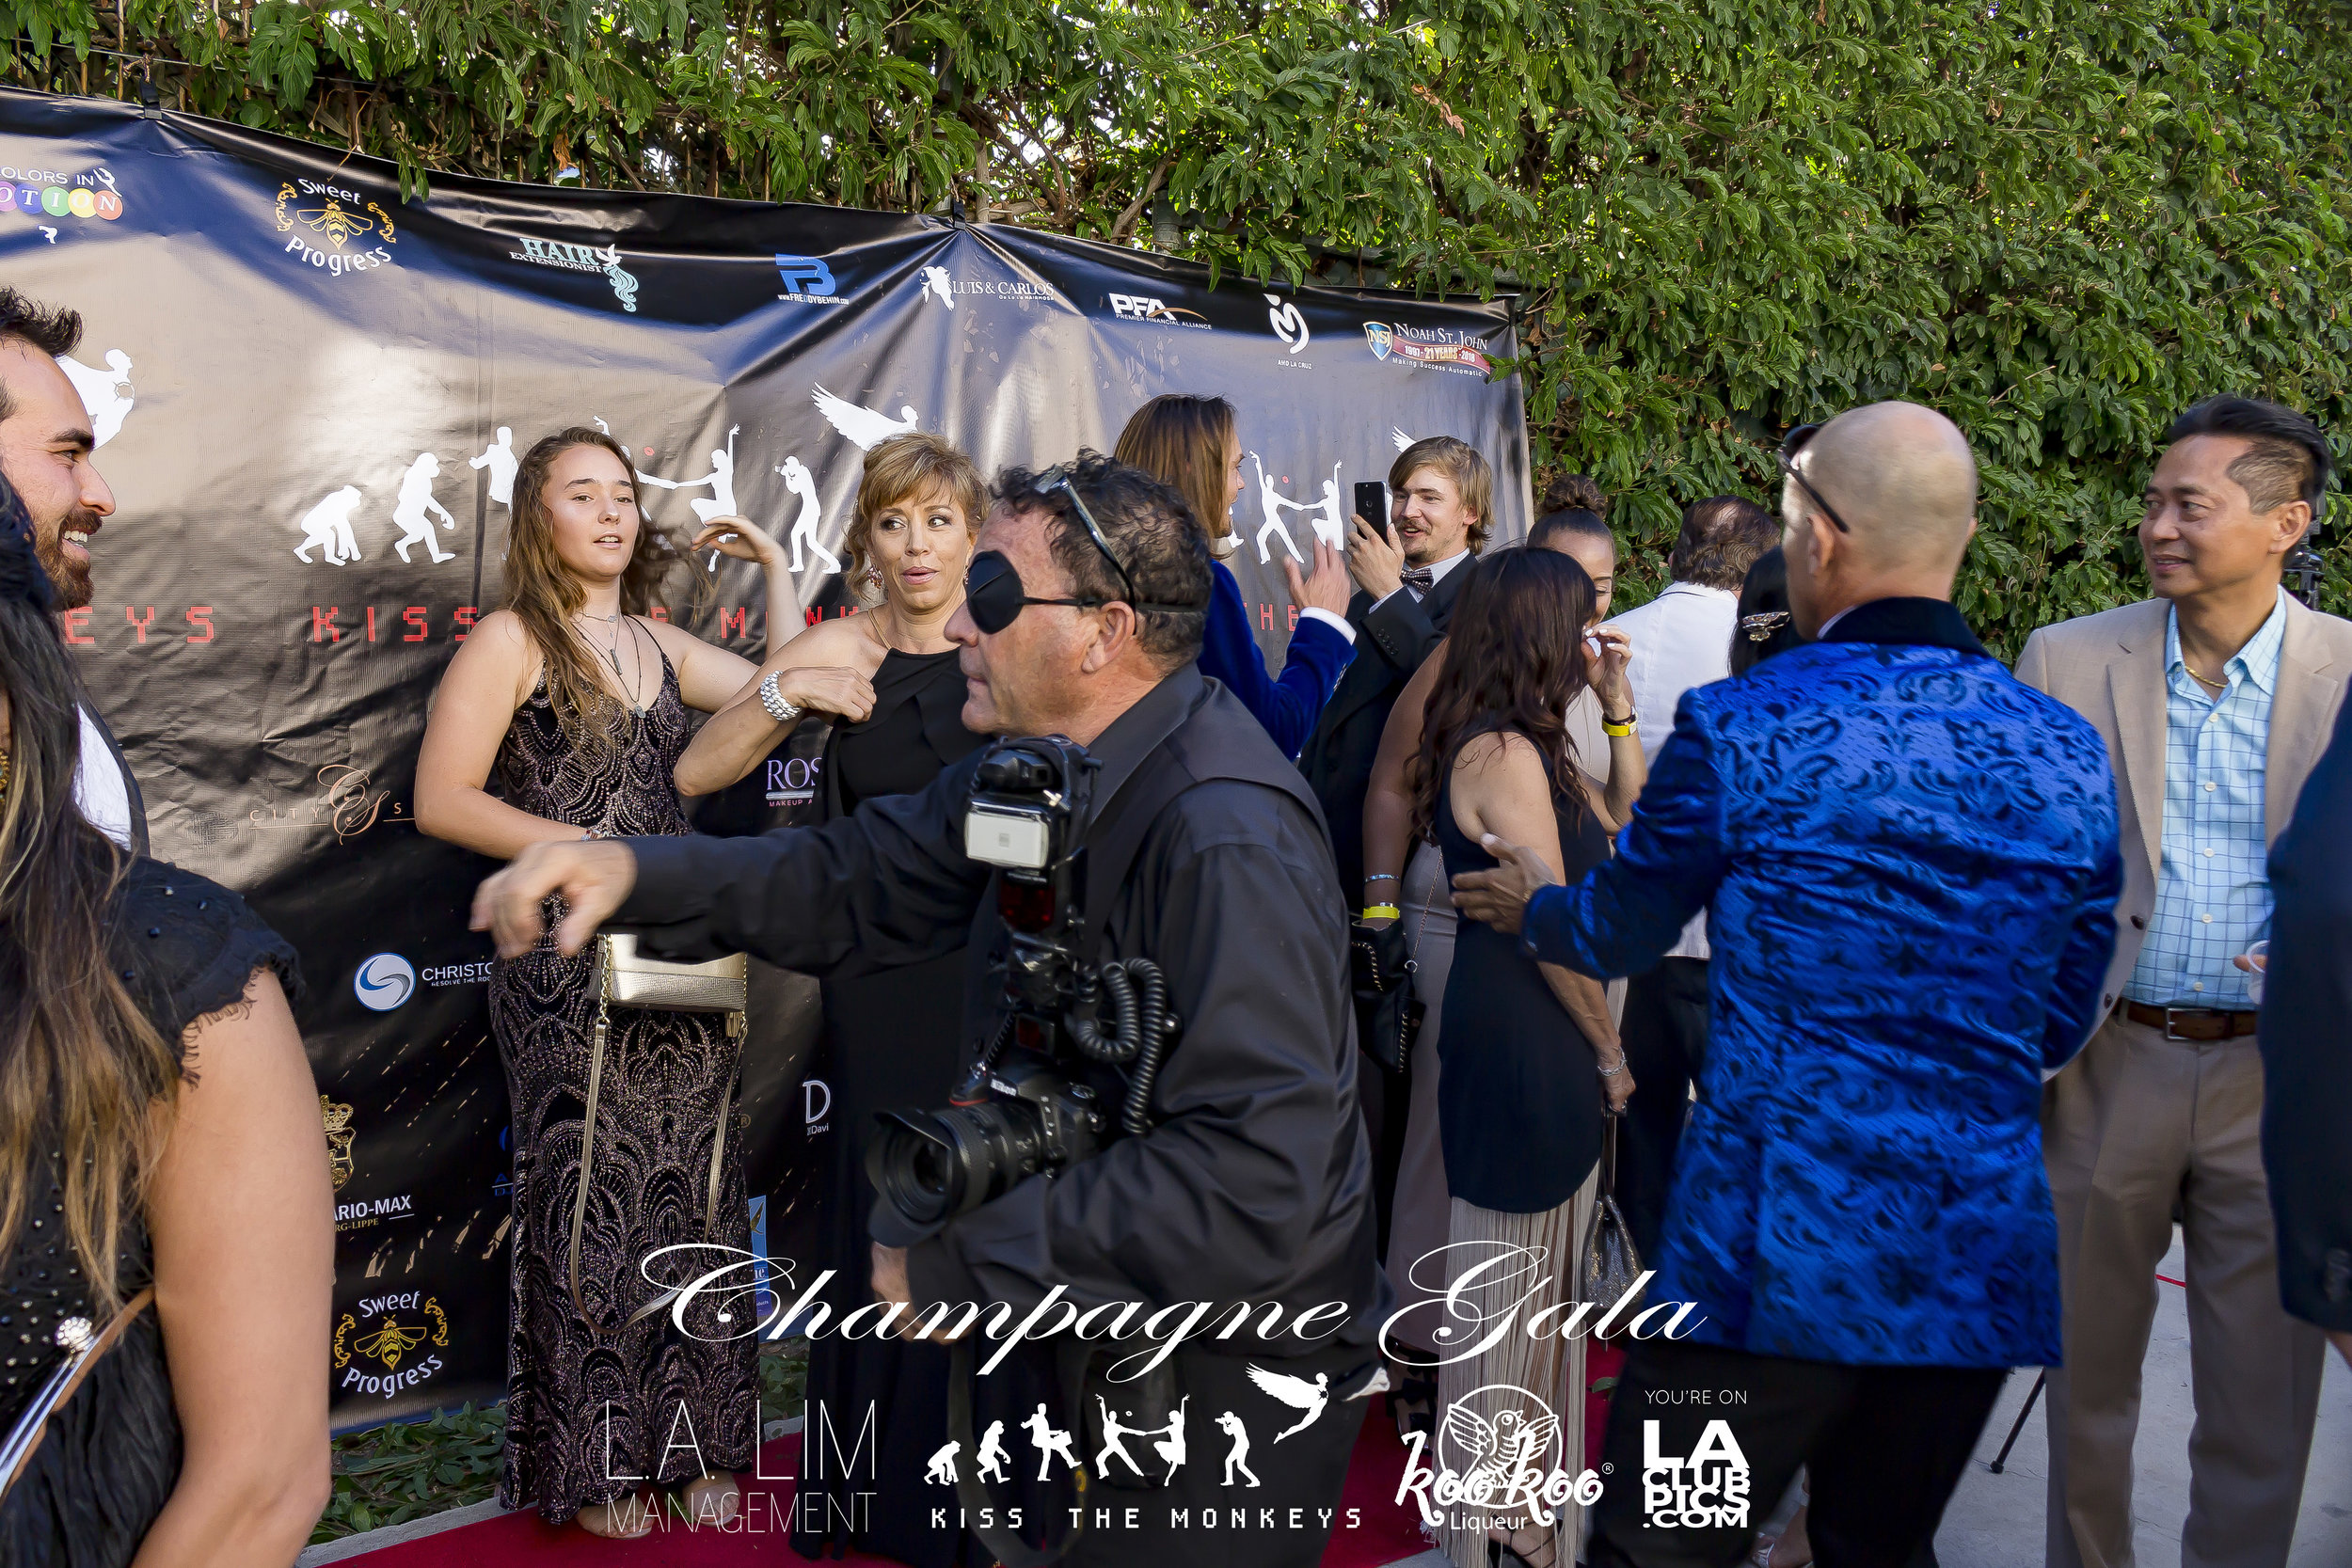 Kiss The Monkeys - Champagne Gala - 07-21-18_72.jpg